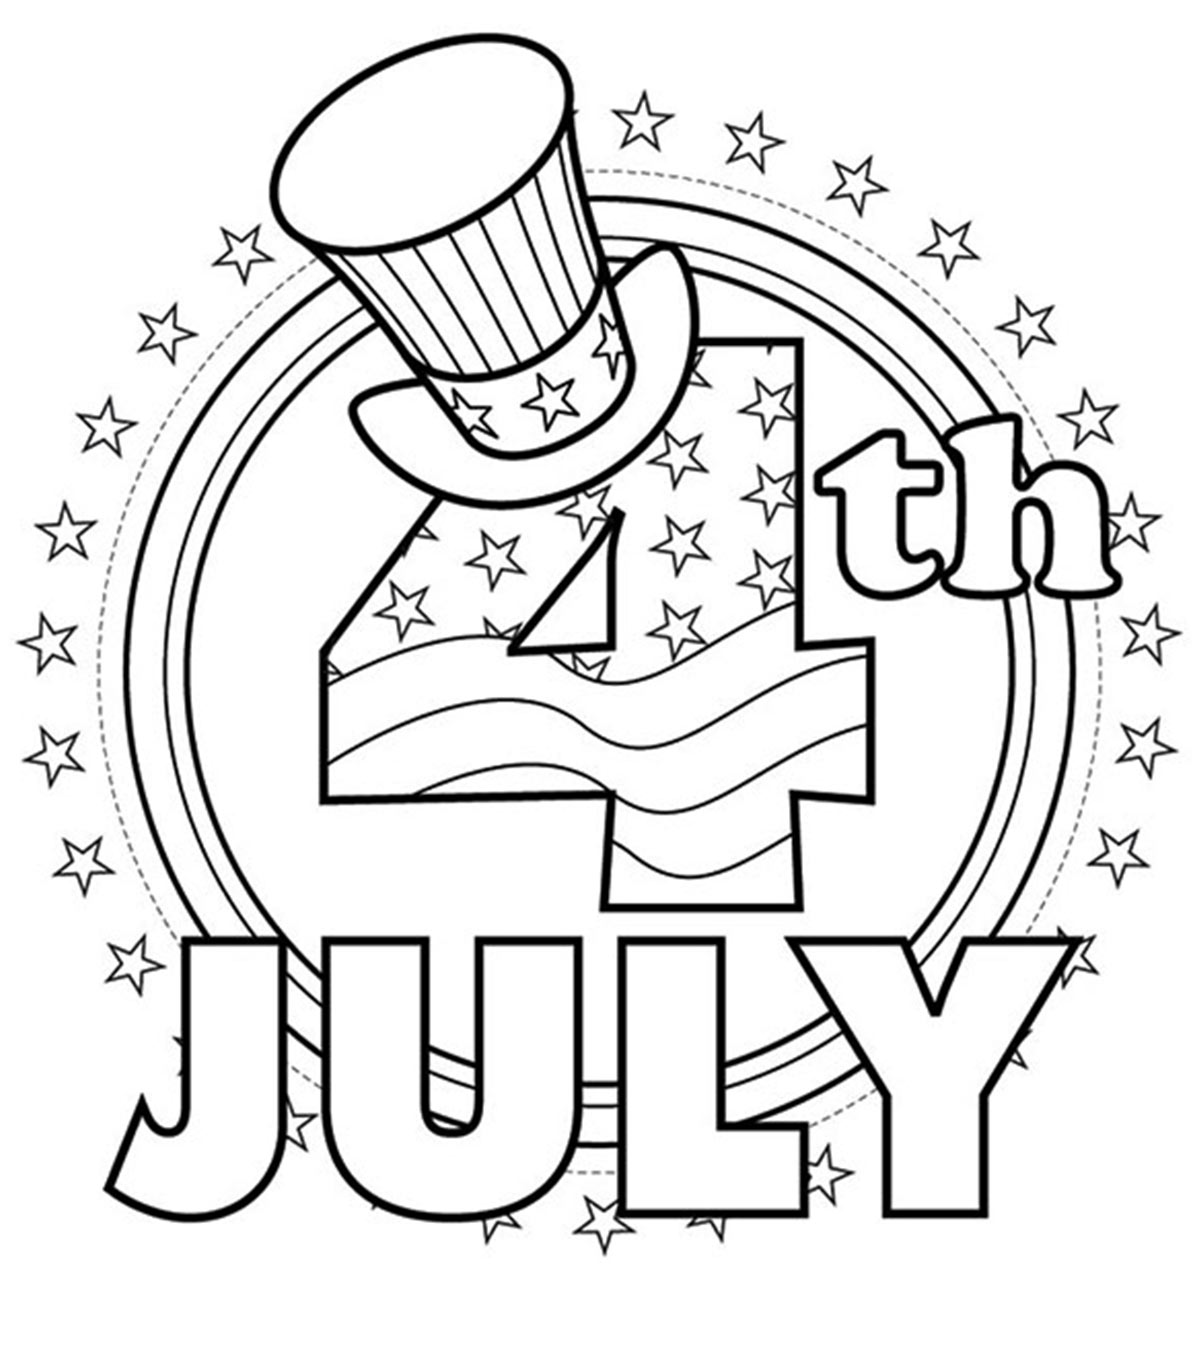 photograph regarding 4th of July Coloring Pages Printable titled Supreme 35 Absolutely free Printable 4th Of July Coloring Internet pages On the net